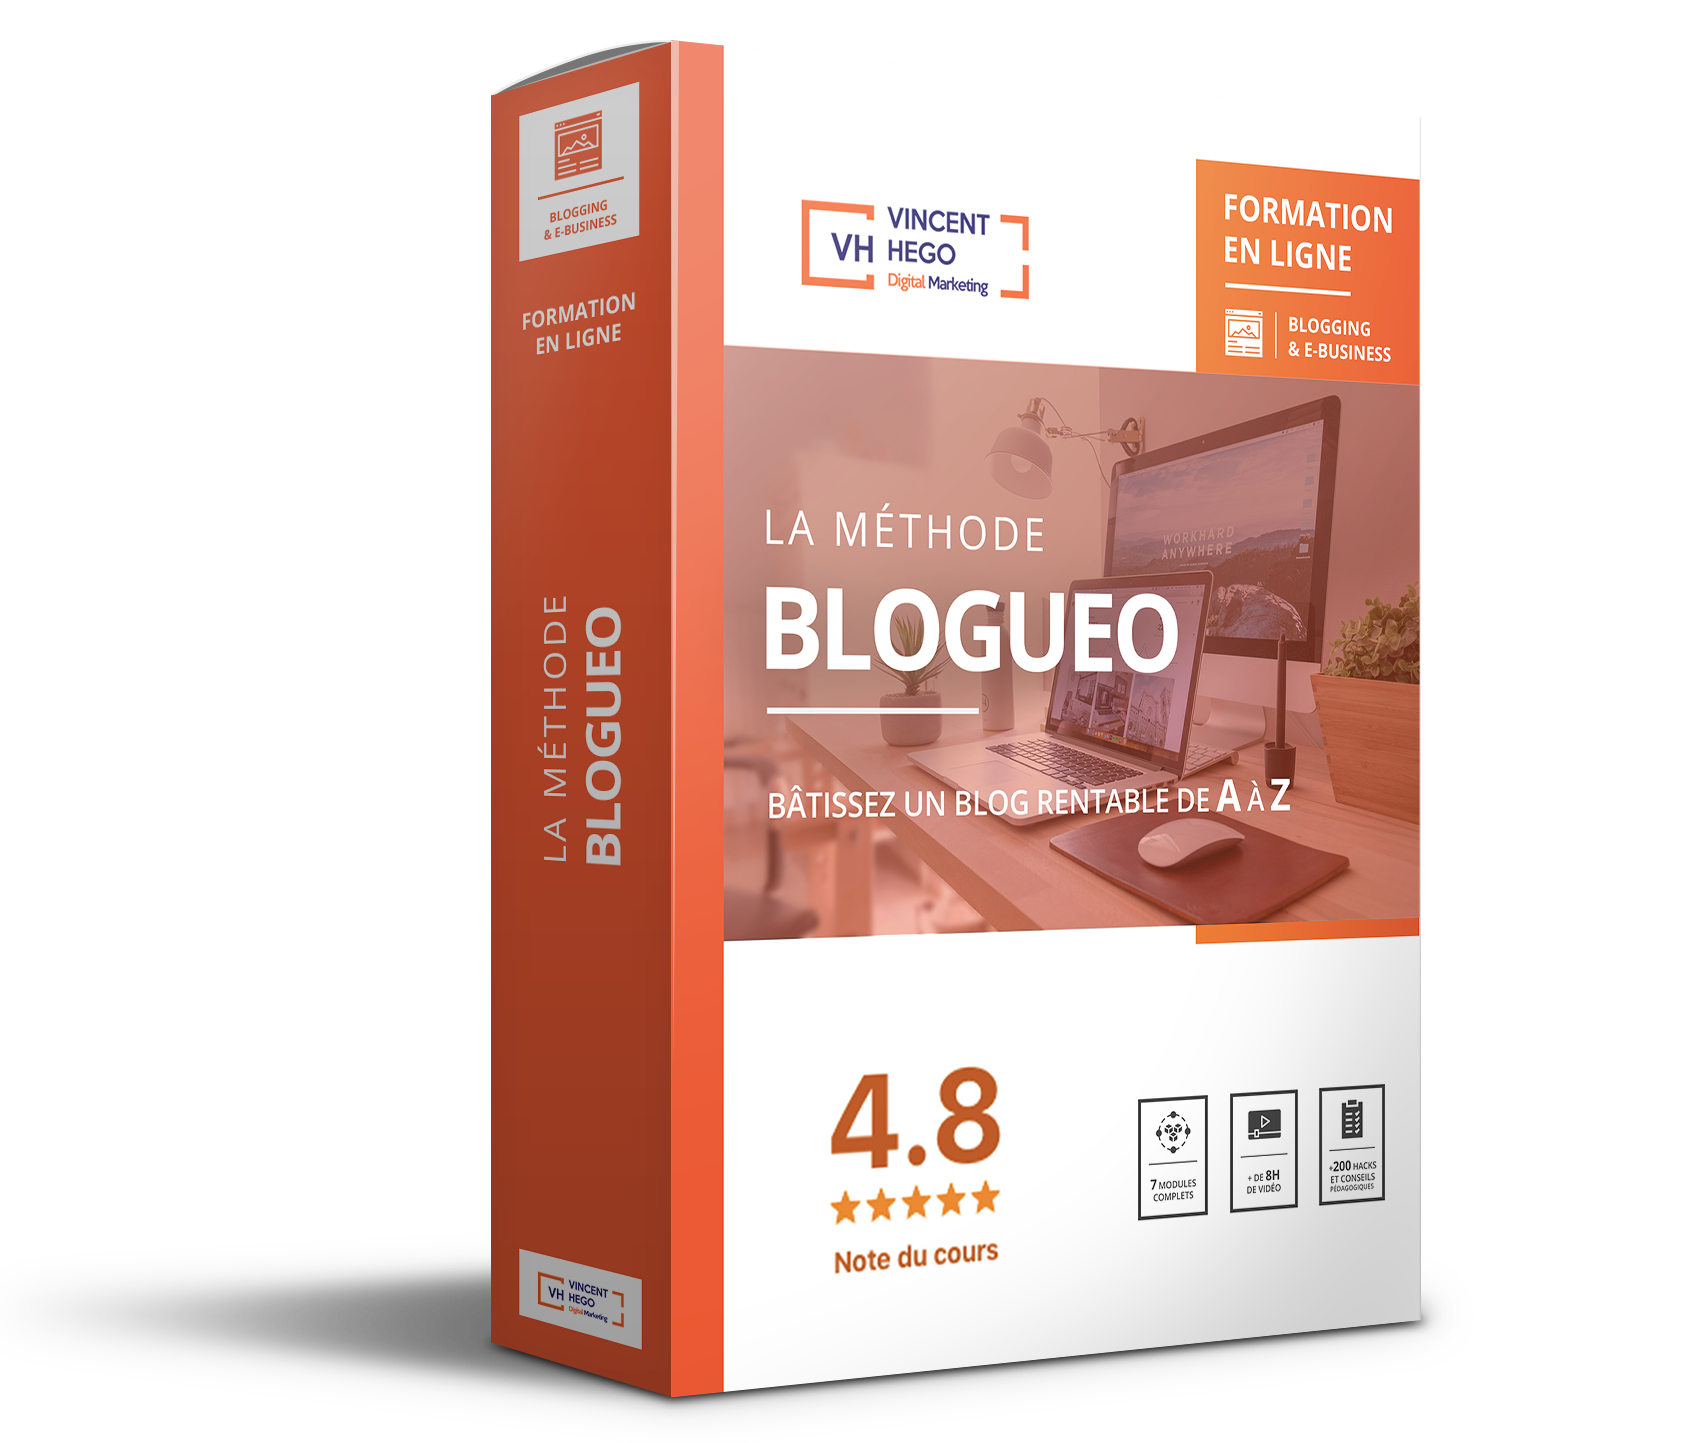 Blogueo - blog rentable